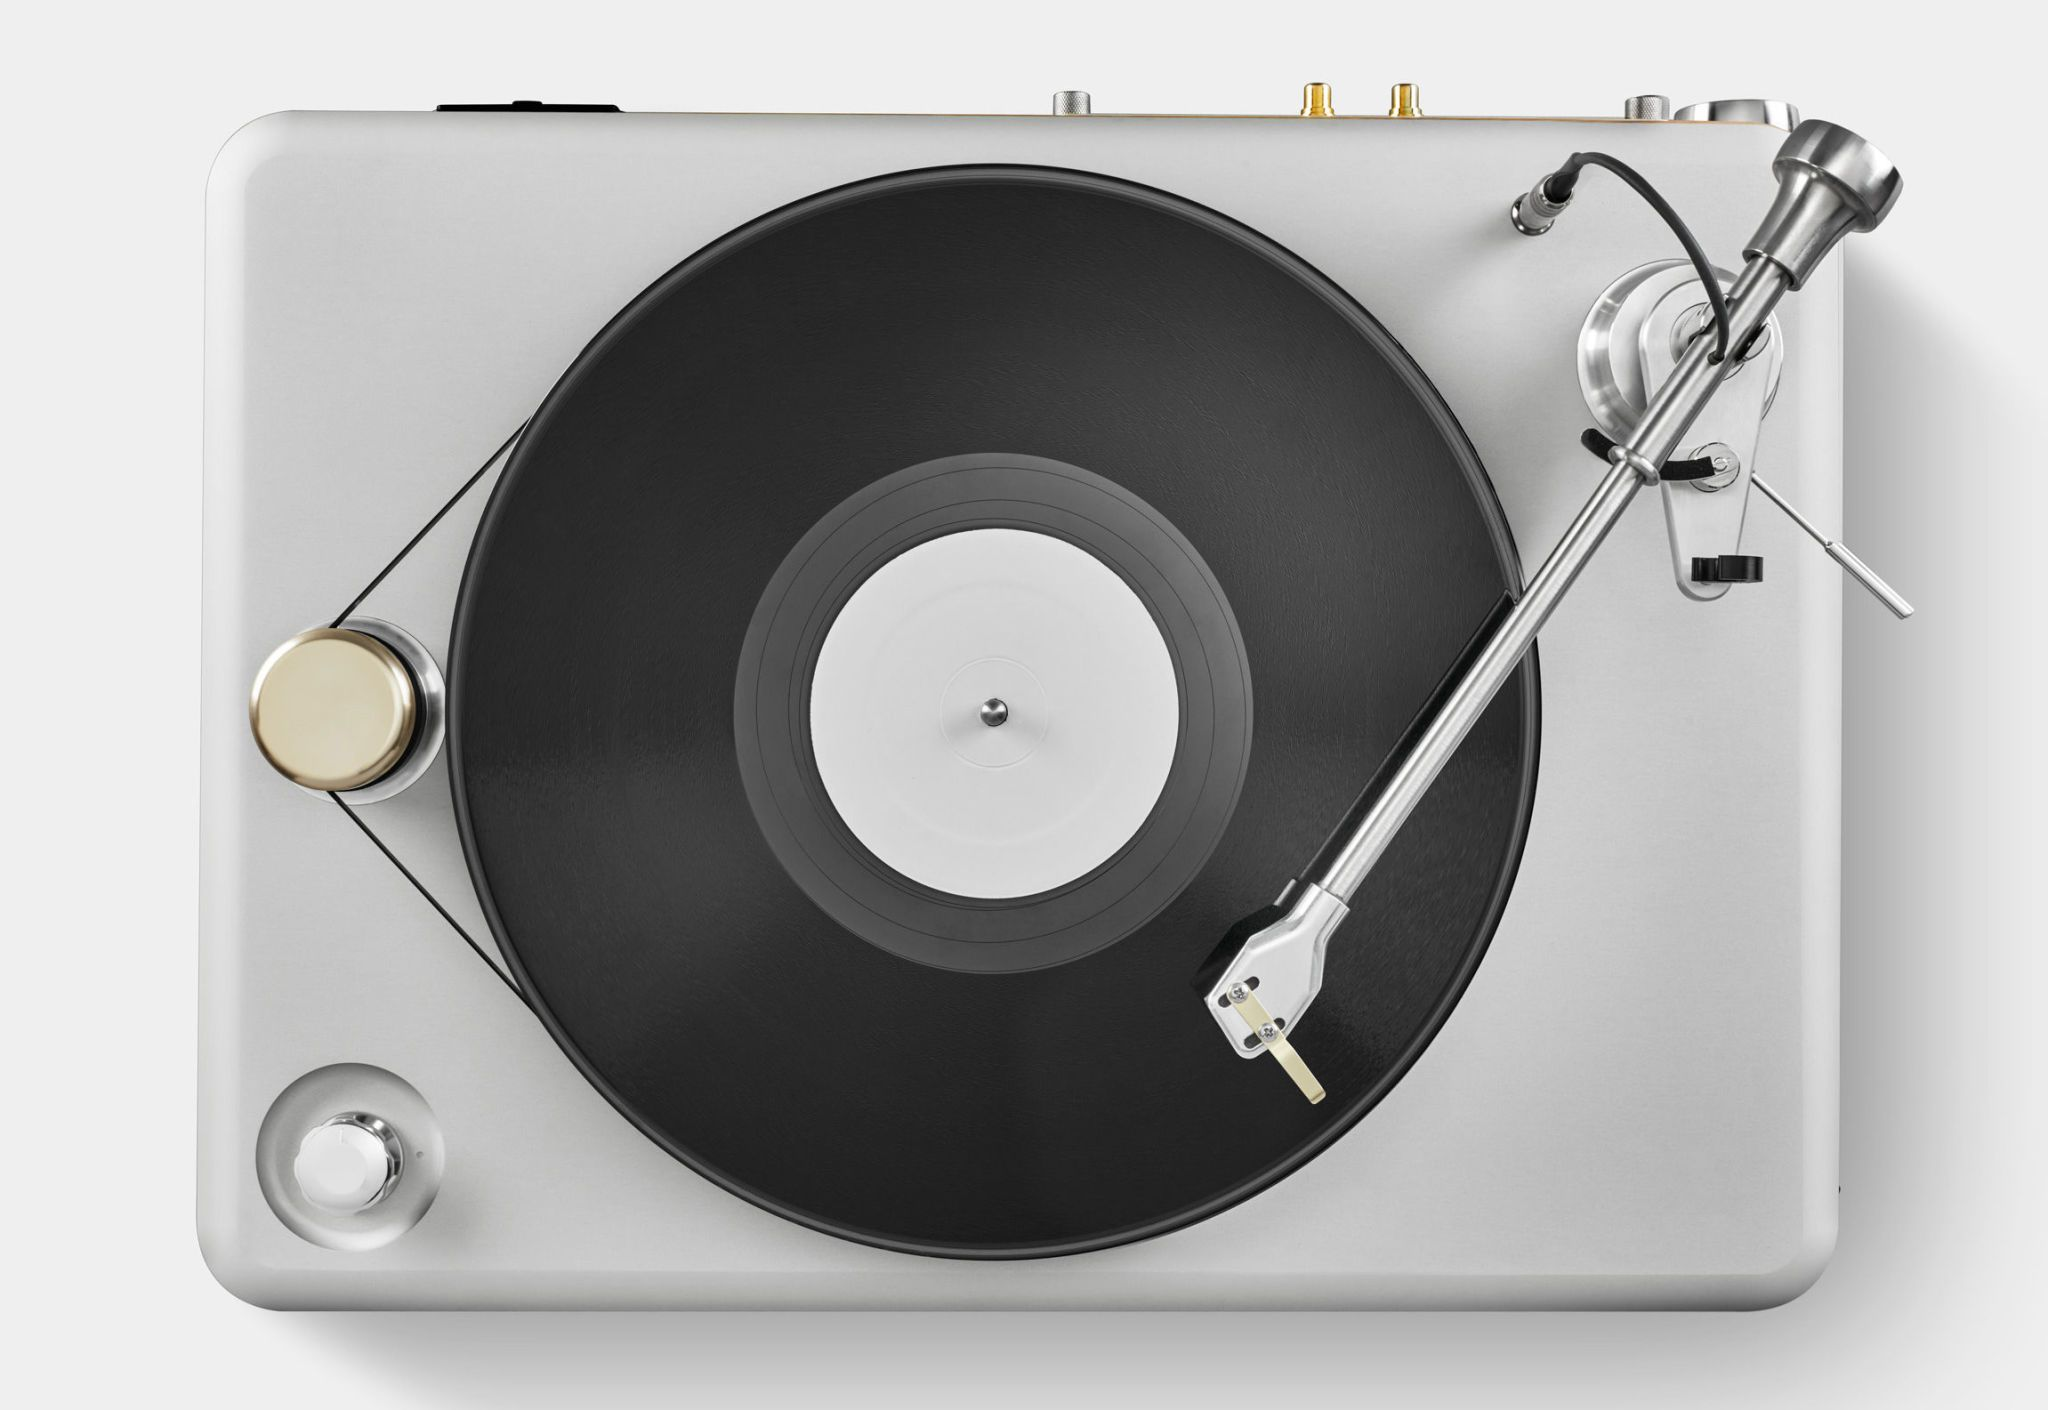 Ordinaire Shinola Runwell Turntable   Are Super Stylish Turntables Officially ...